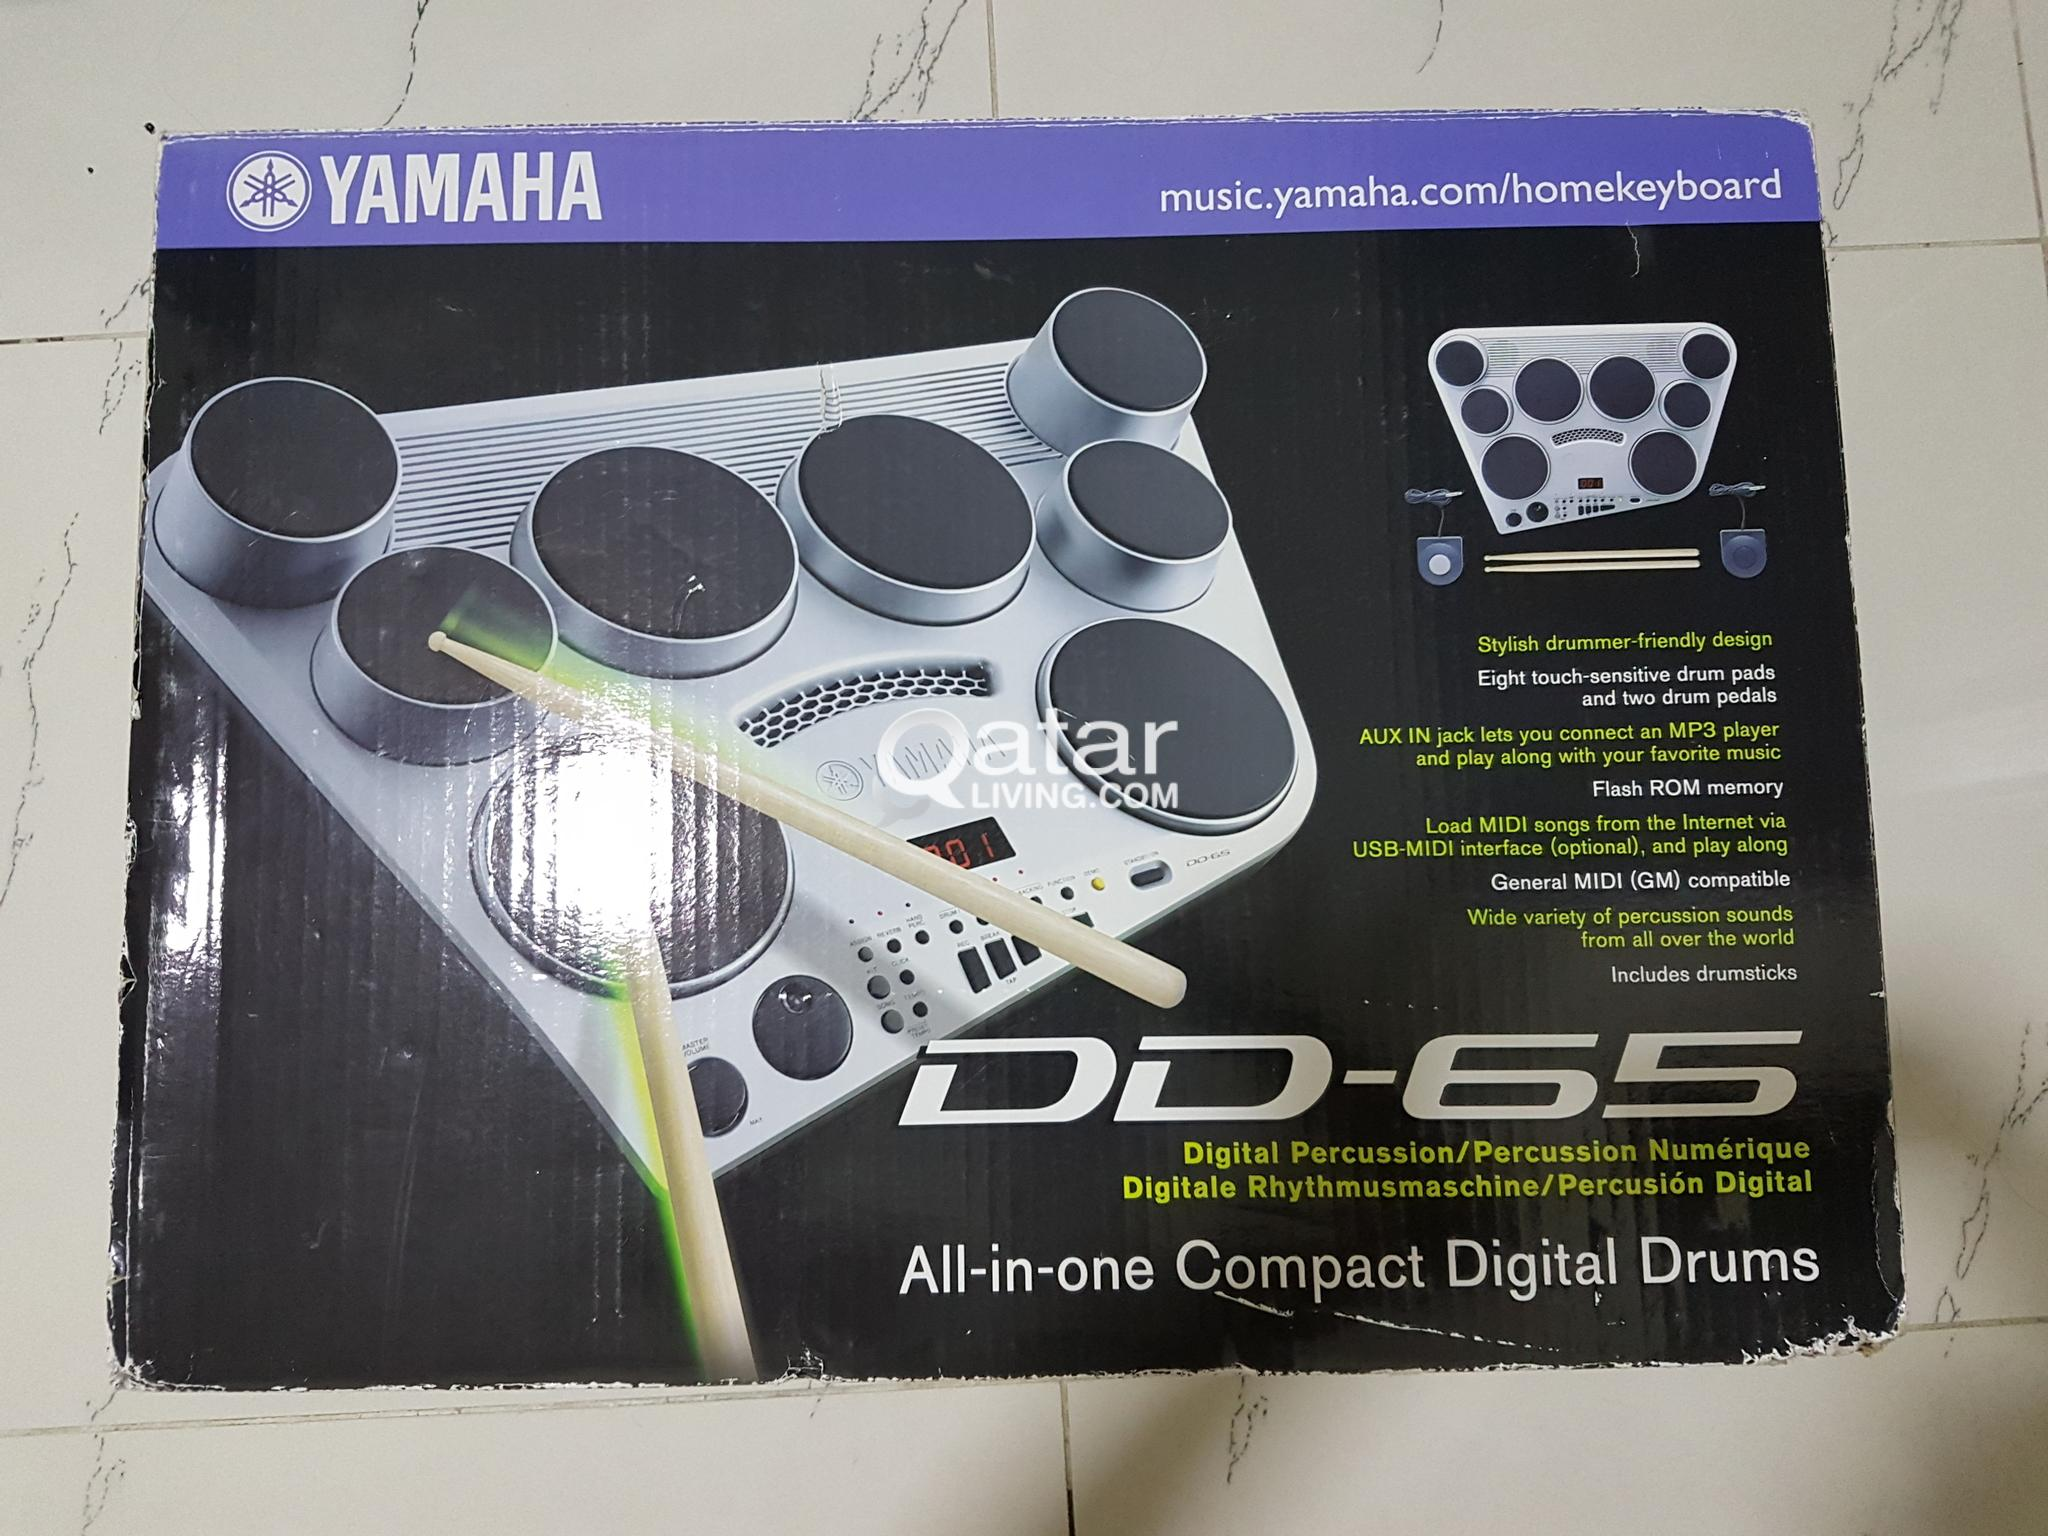 Yamaha DD-65 All-in-one Compact Digital Drums | Qatar Living